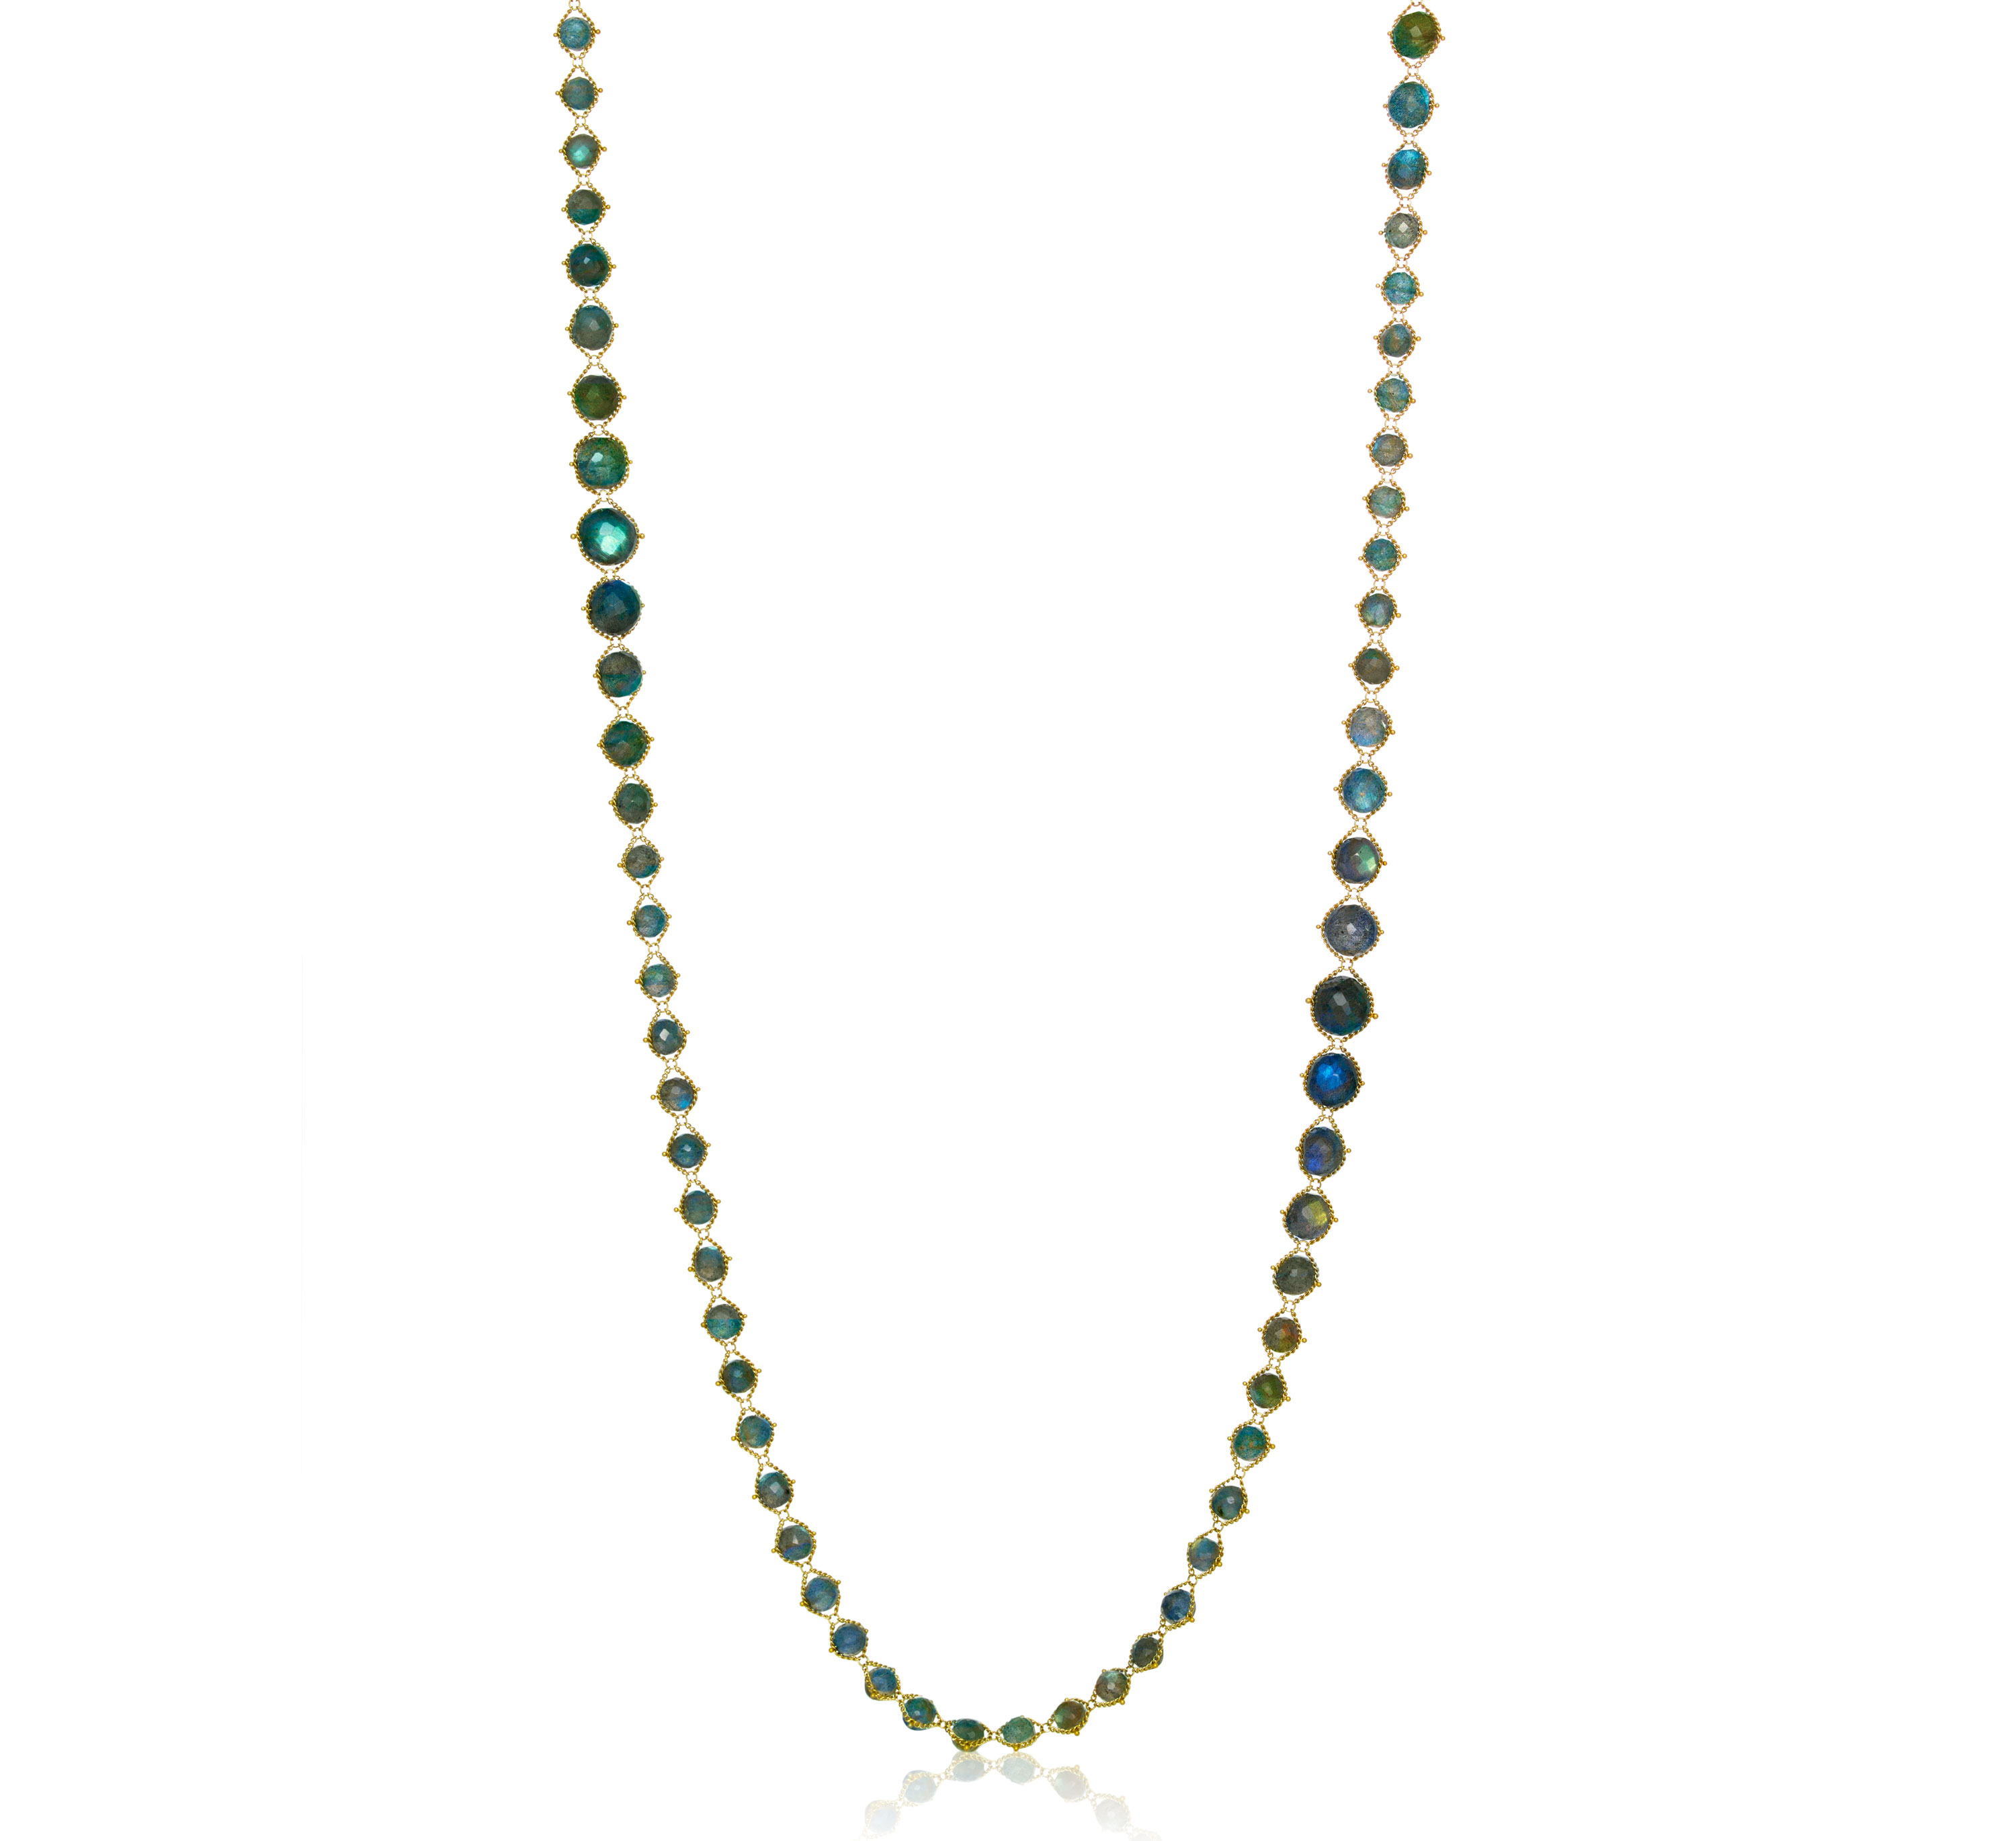 Amali Jewelry woven labradorite necklace | JCK On Your Market